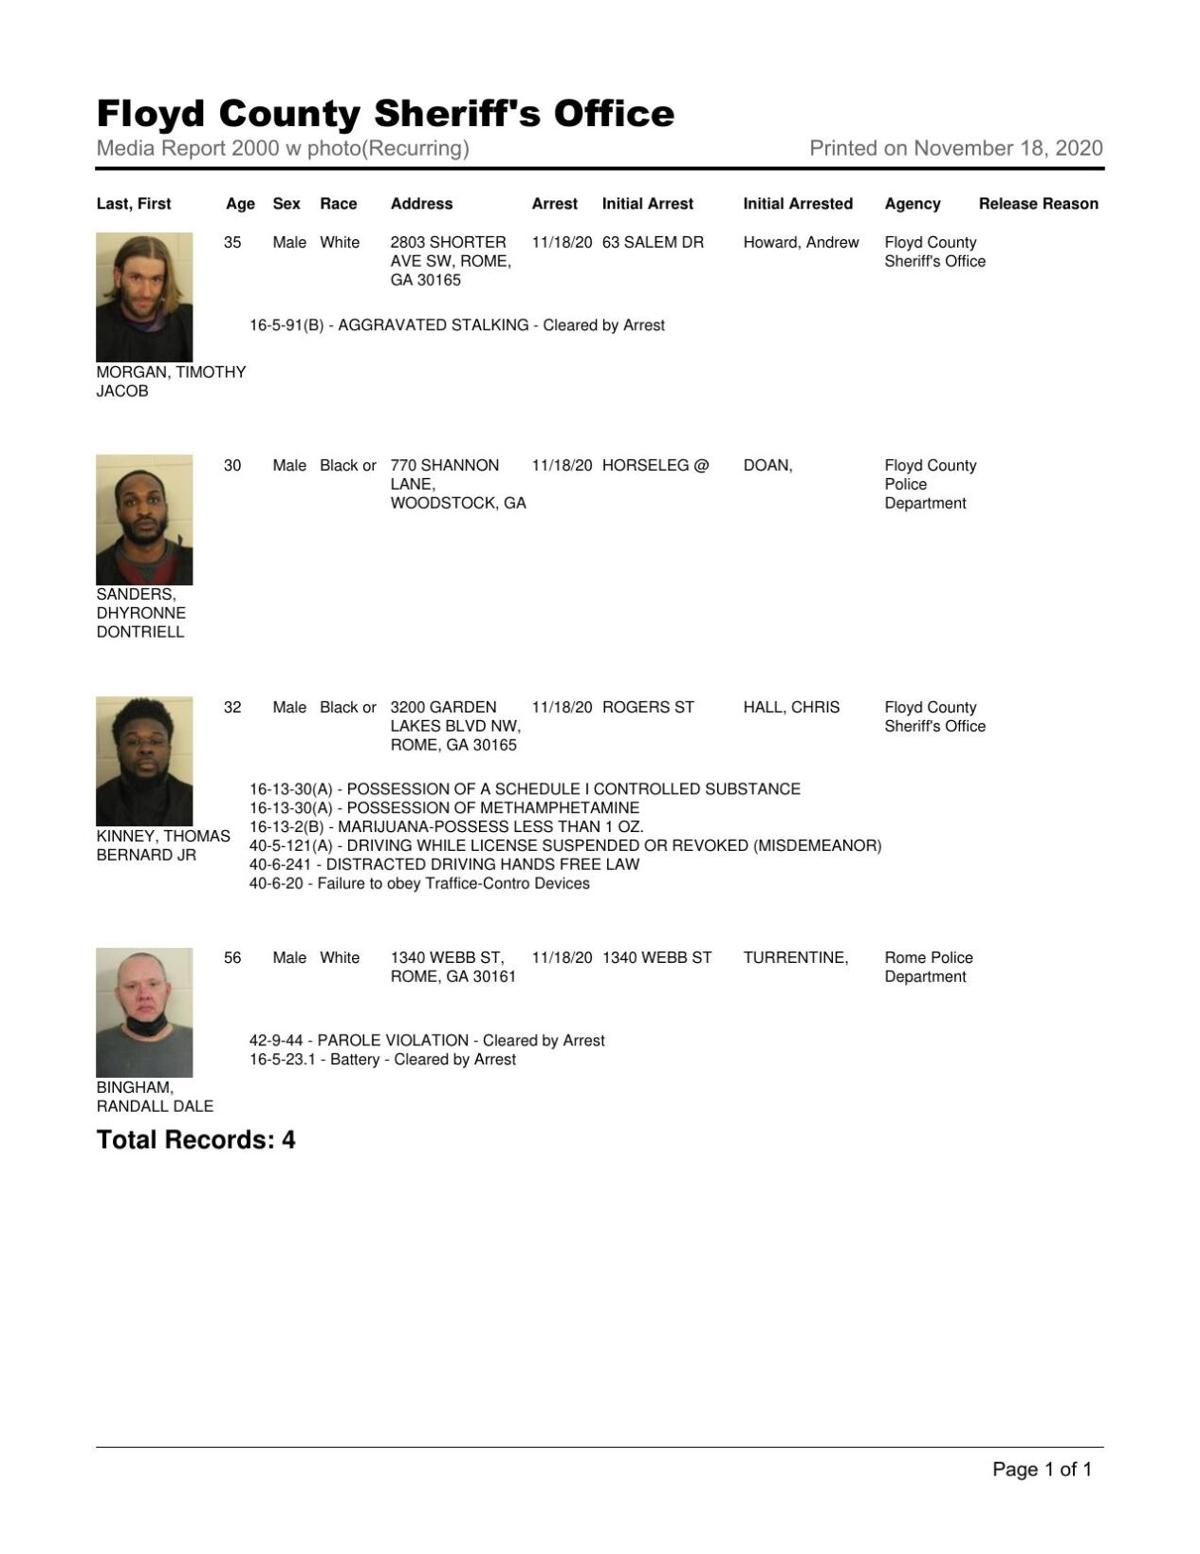 Floyd County Jail report for 8 p.m. Wednesday, Nov. 18